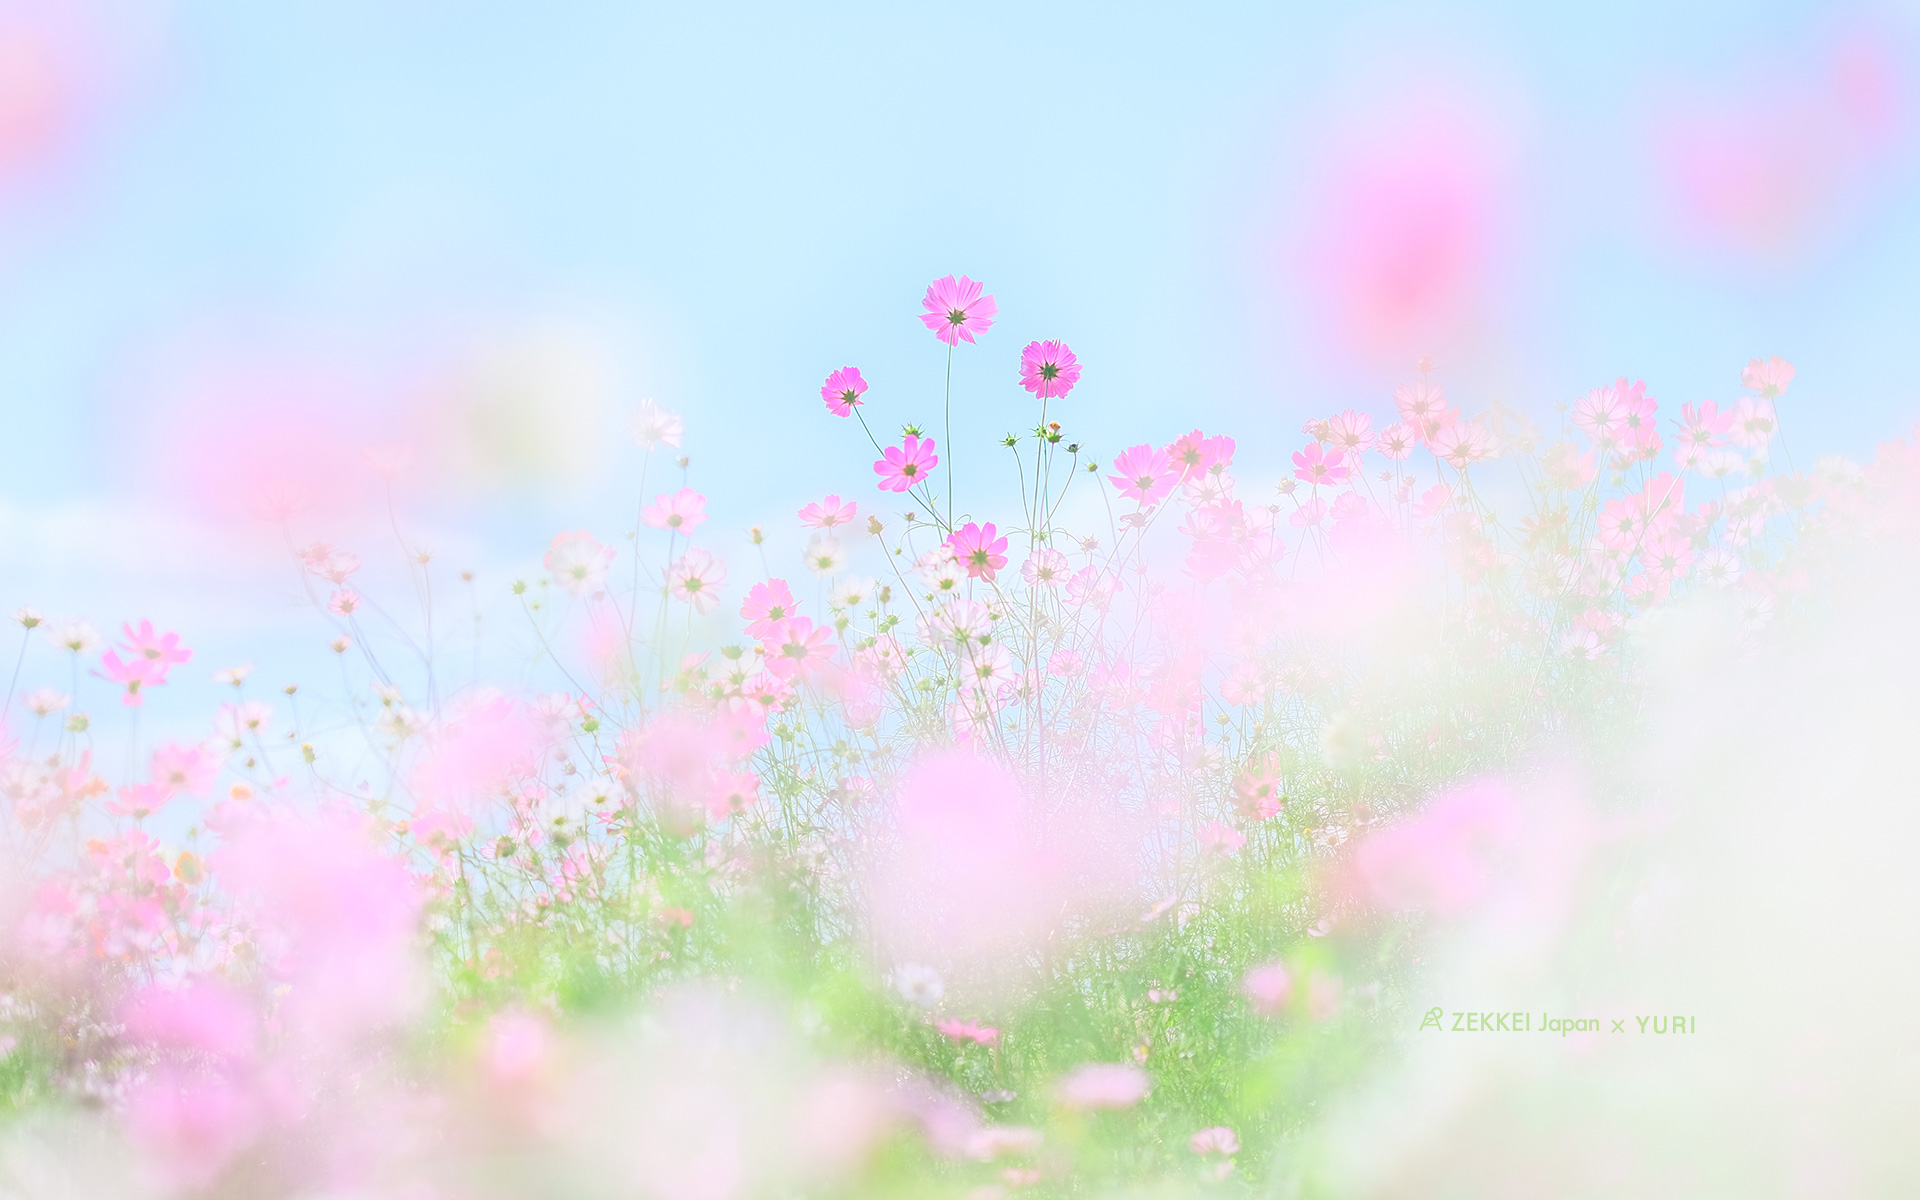 Wallpapers Wallpapers Of Fluffy Pastel Colored Flowers Zekkei Japan